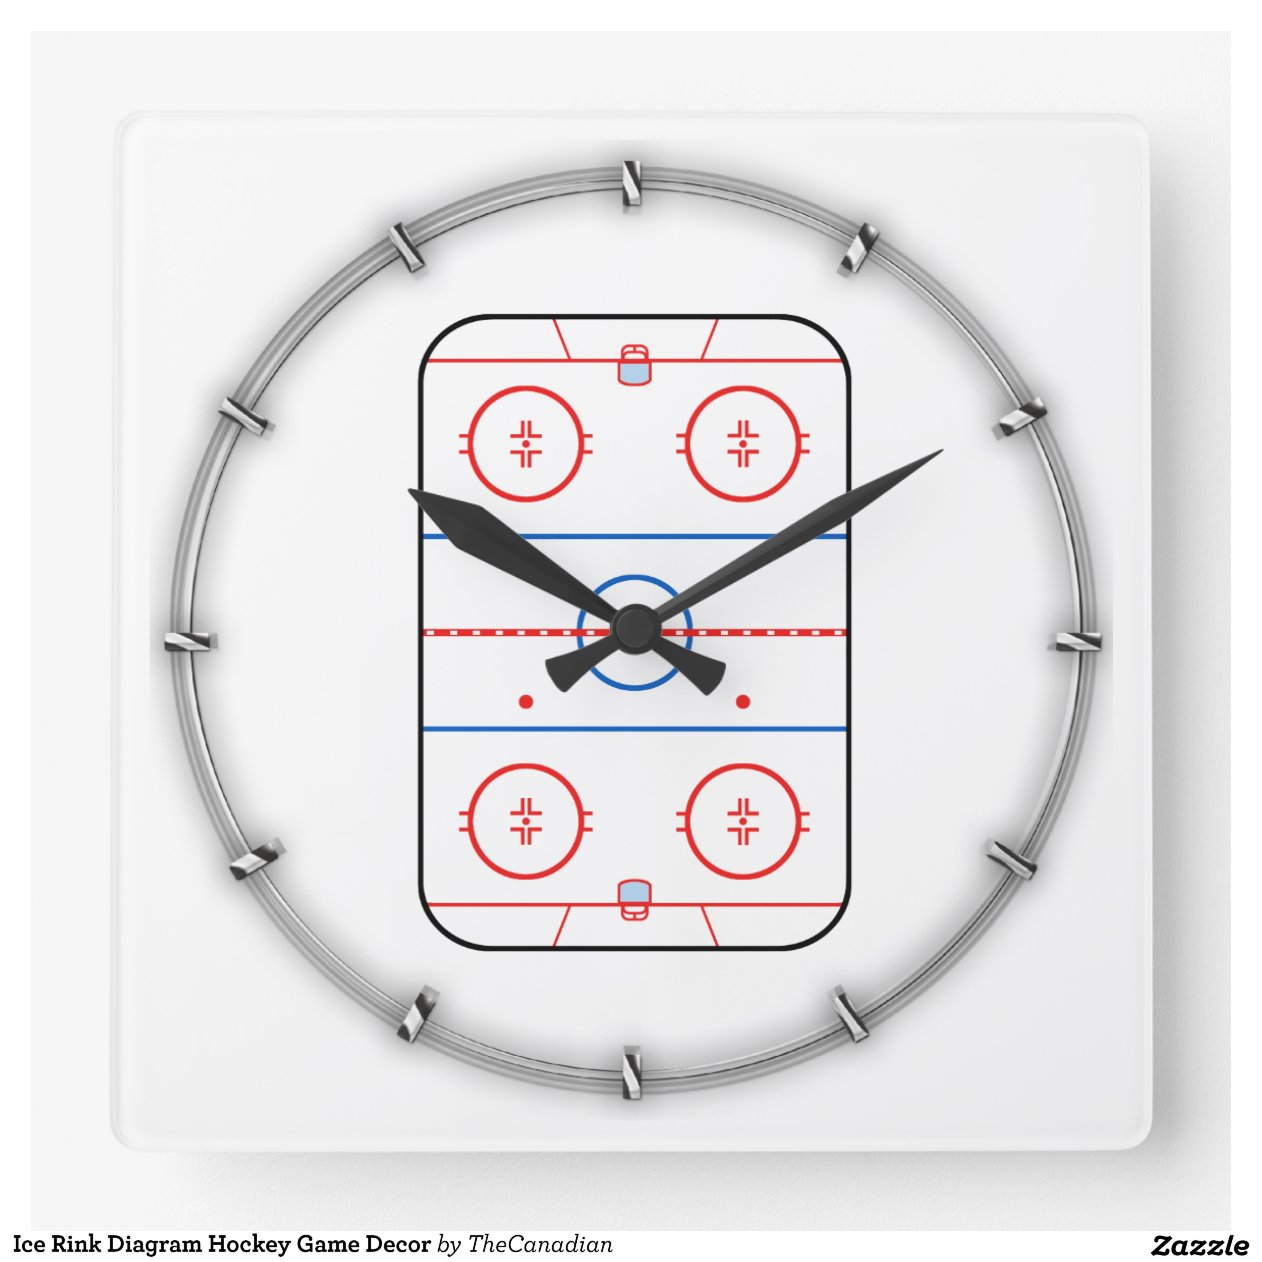 hockey rink diagram thermolec electric boiler wiring ice game companion wall clocks zazzle